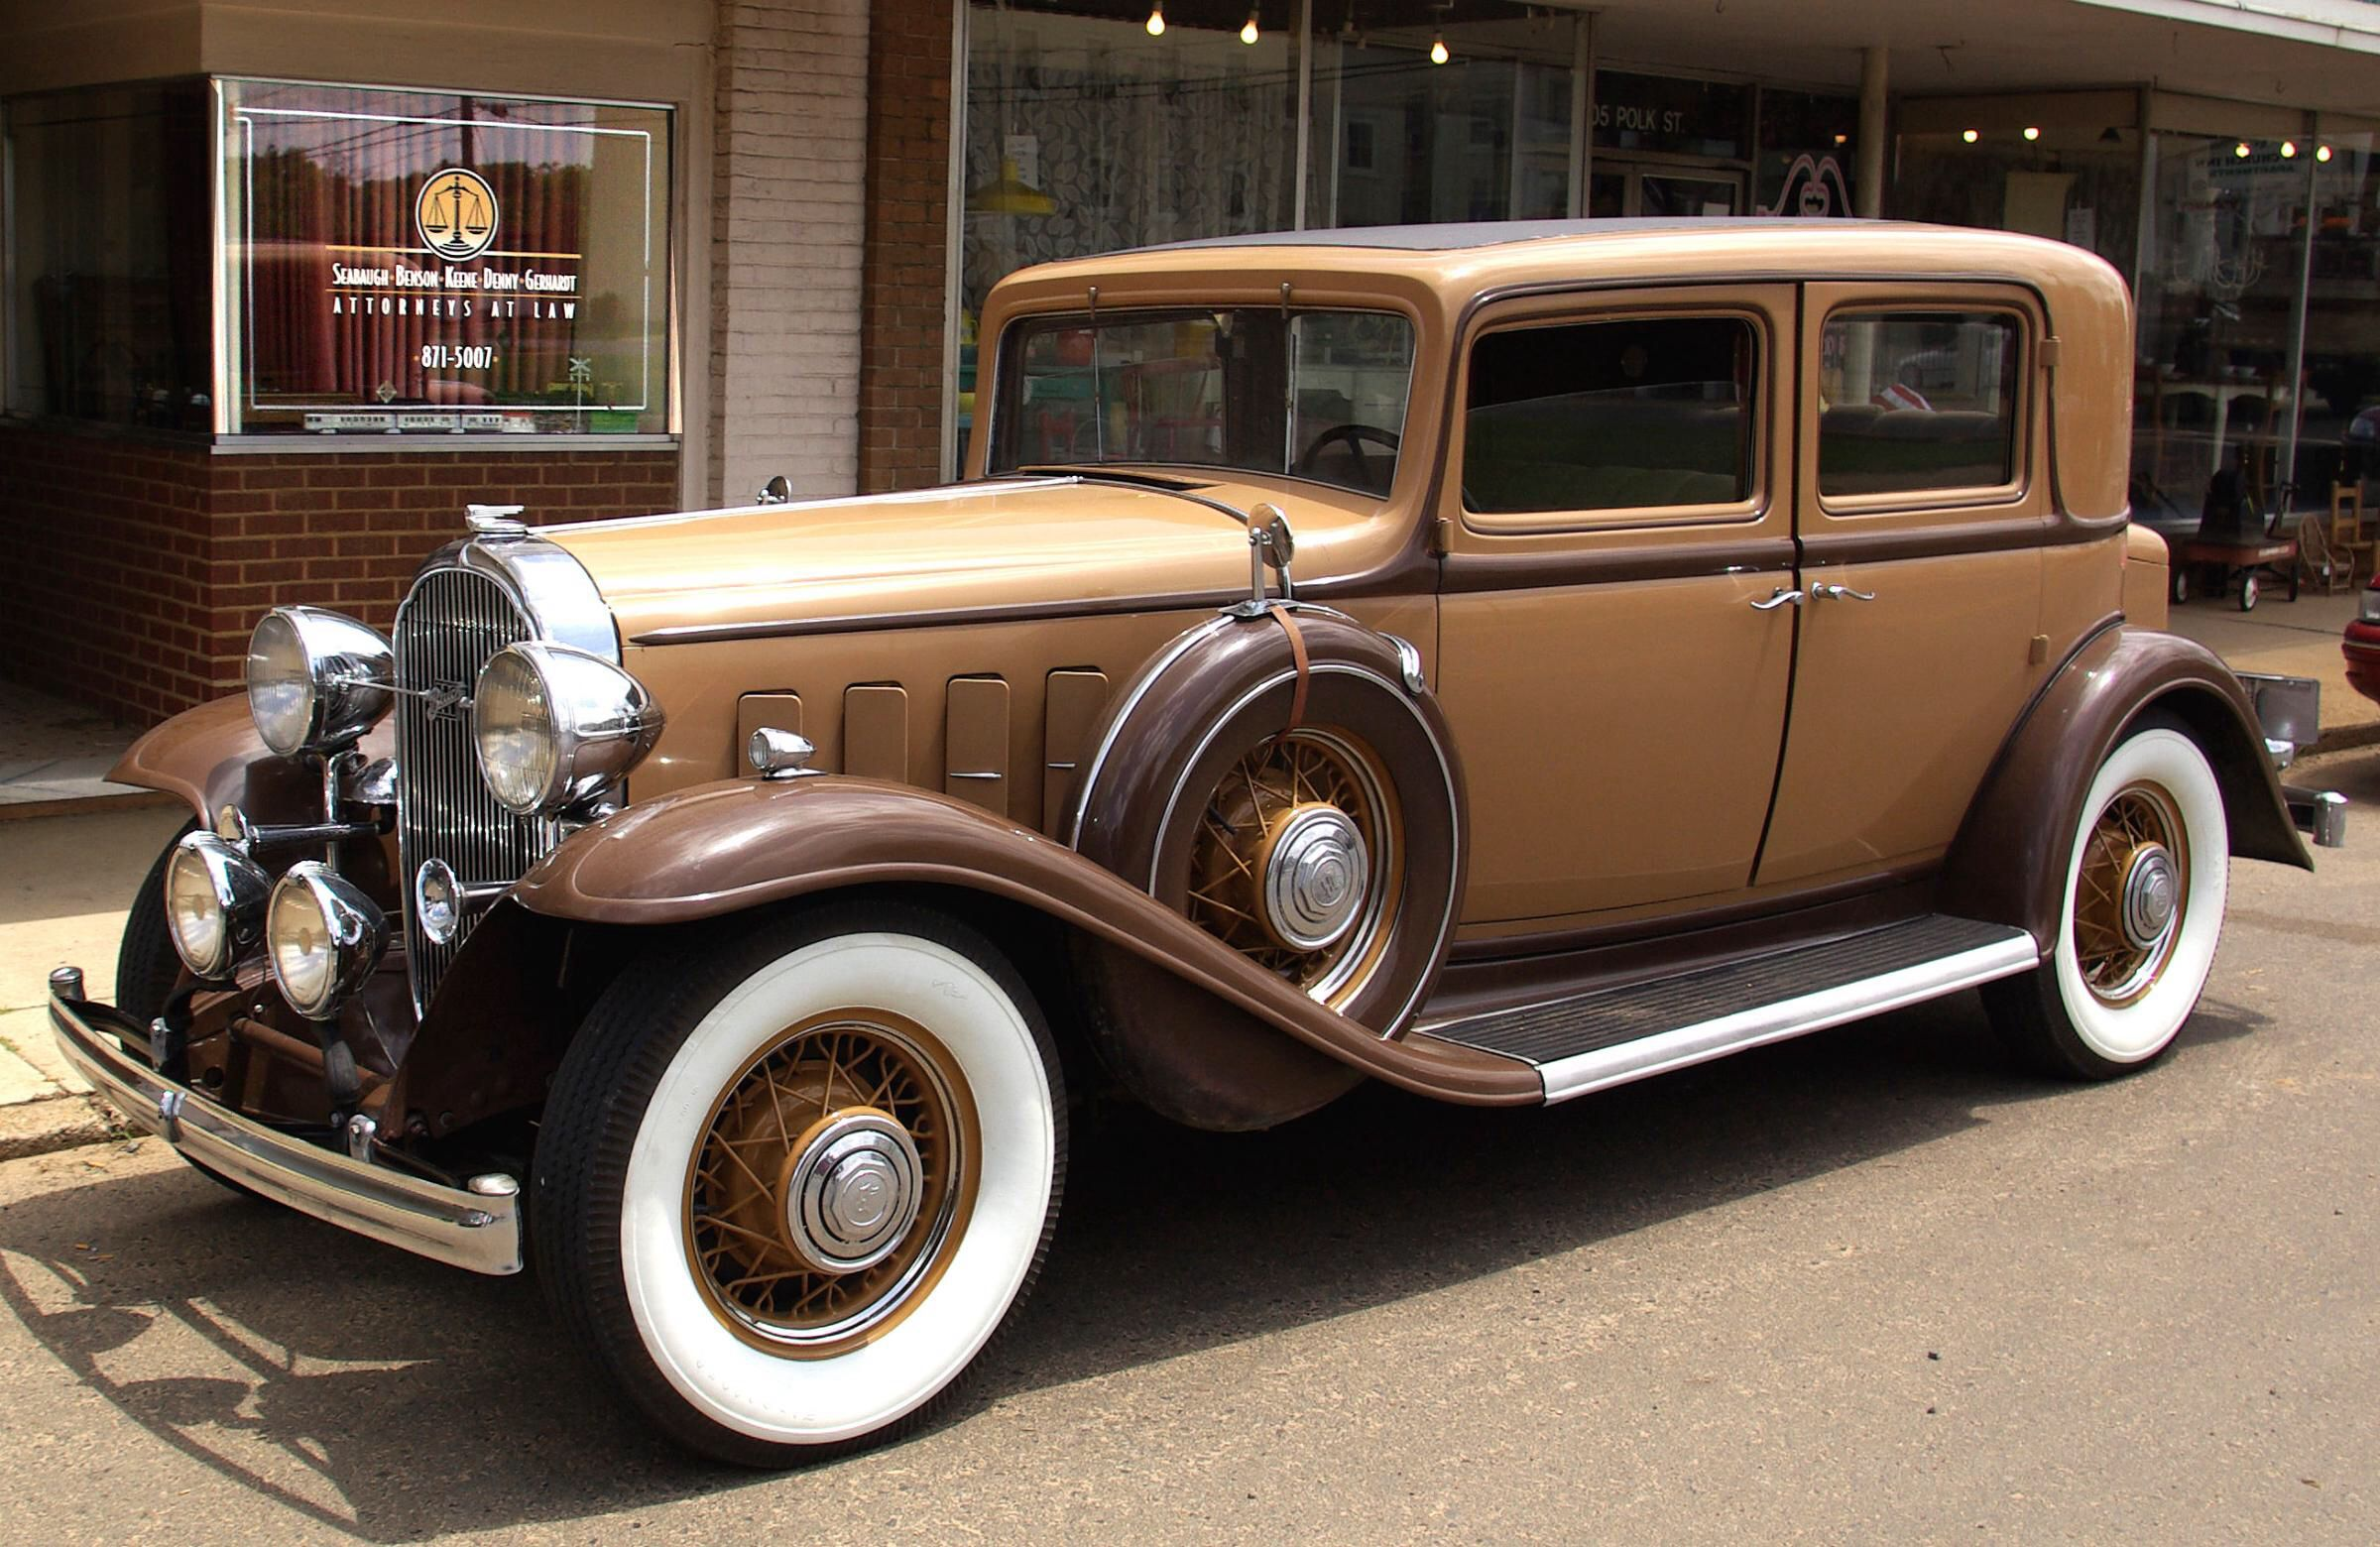 Image from http://oldcars.files.wordpress.com/2008/05/1932-buick.jpg ...